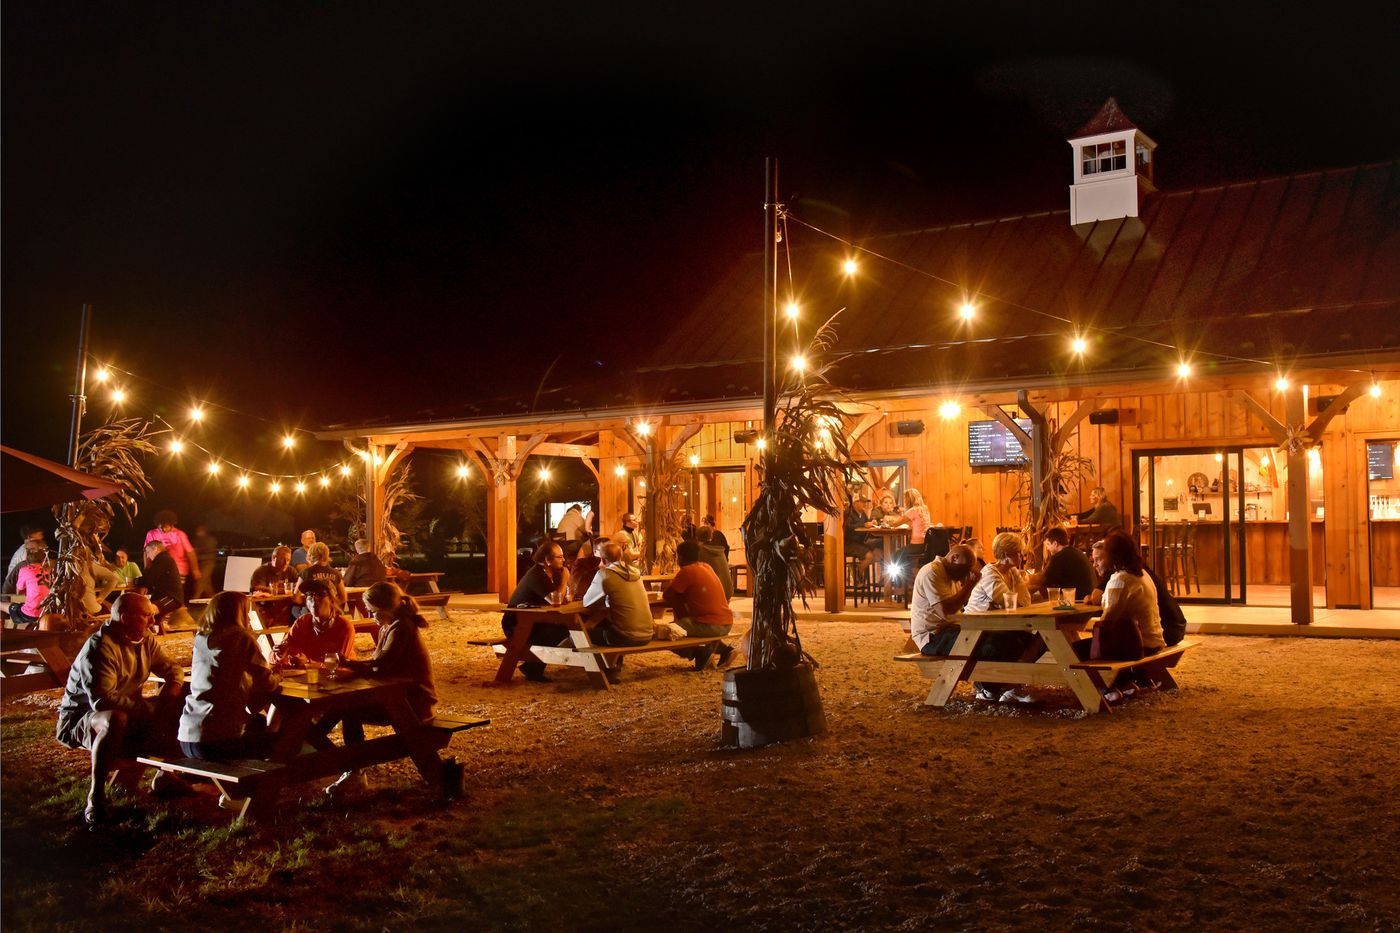 Patrons relax outside the tap room at Hopkins Farm Brewery, which opened in July.